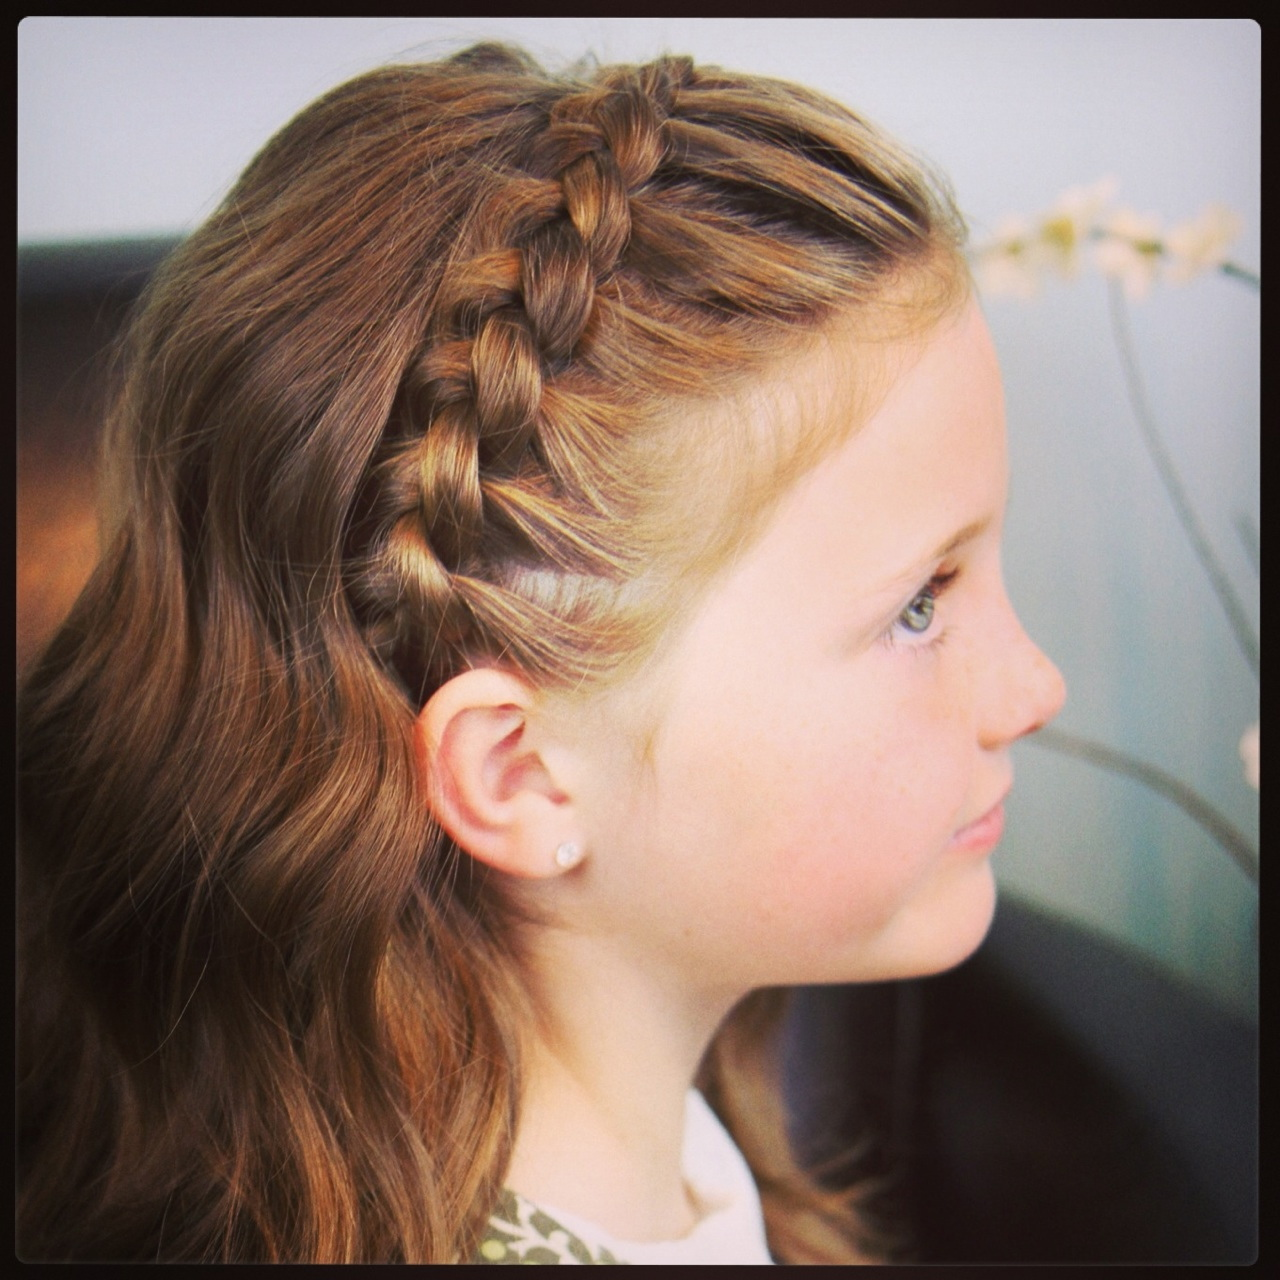 Since we have been loving lace braids lately we thought it would be a